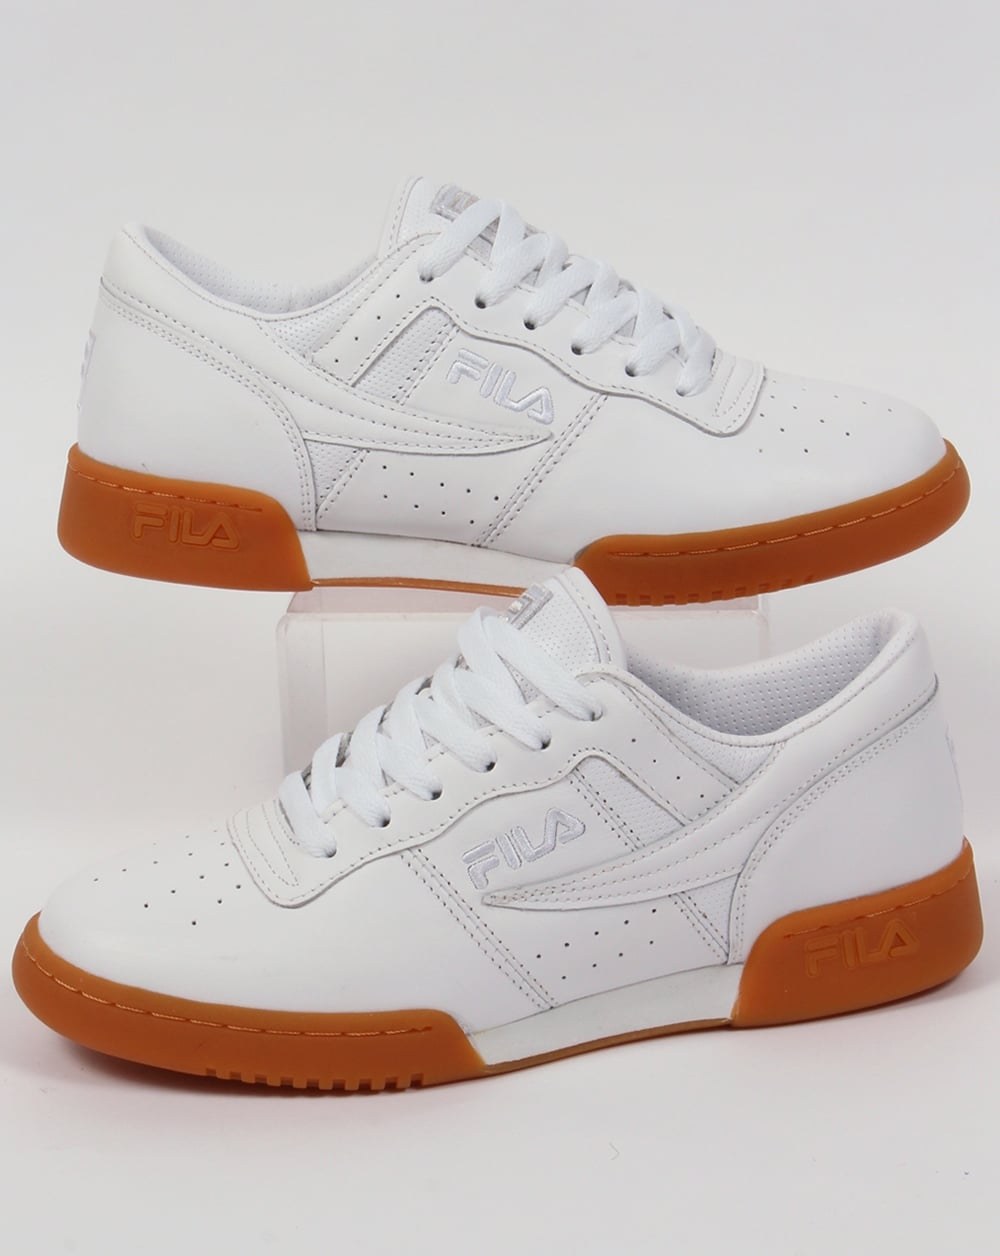 many styles running shoes colours and striking Fila Vintage Original Fitness Premium Trainers White/Gum